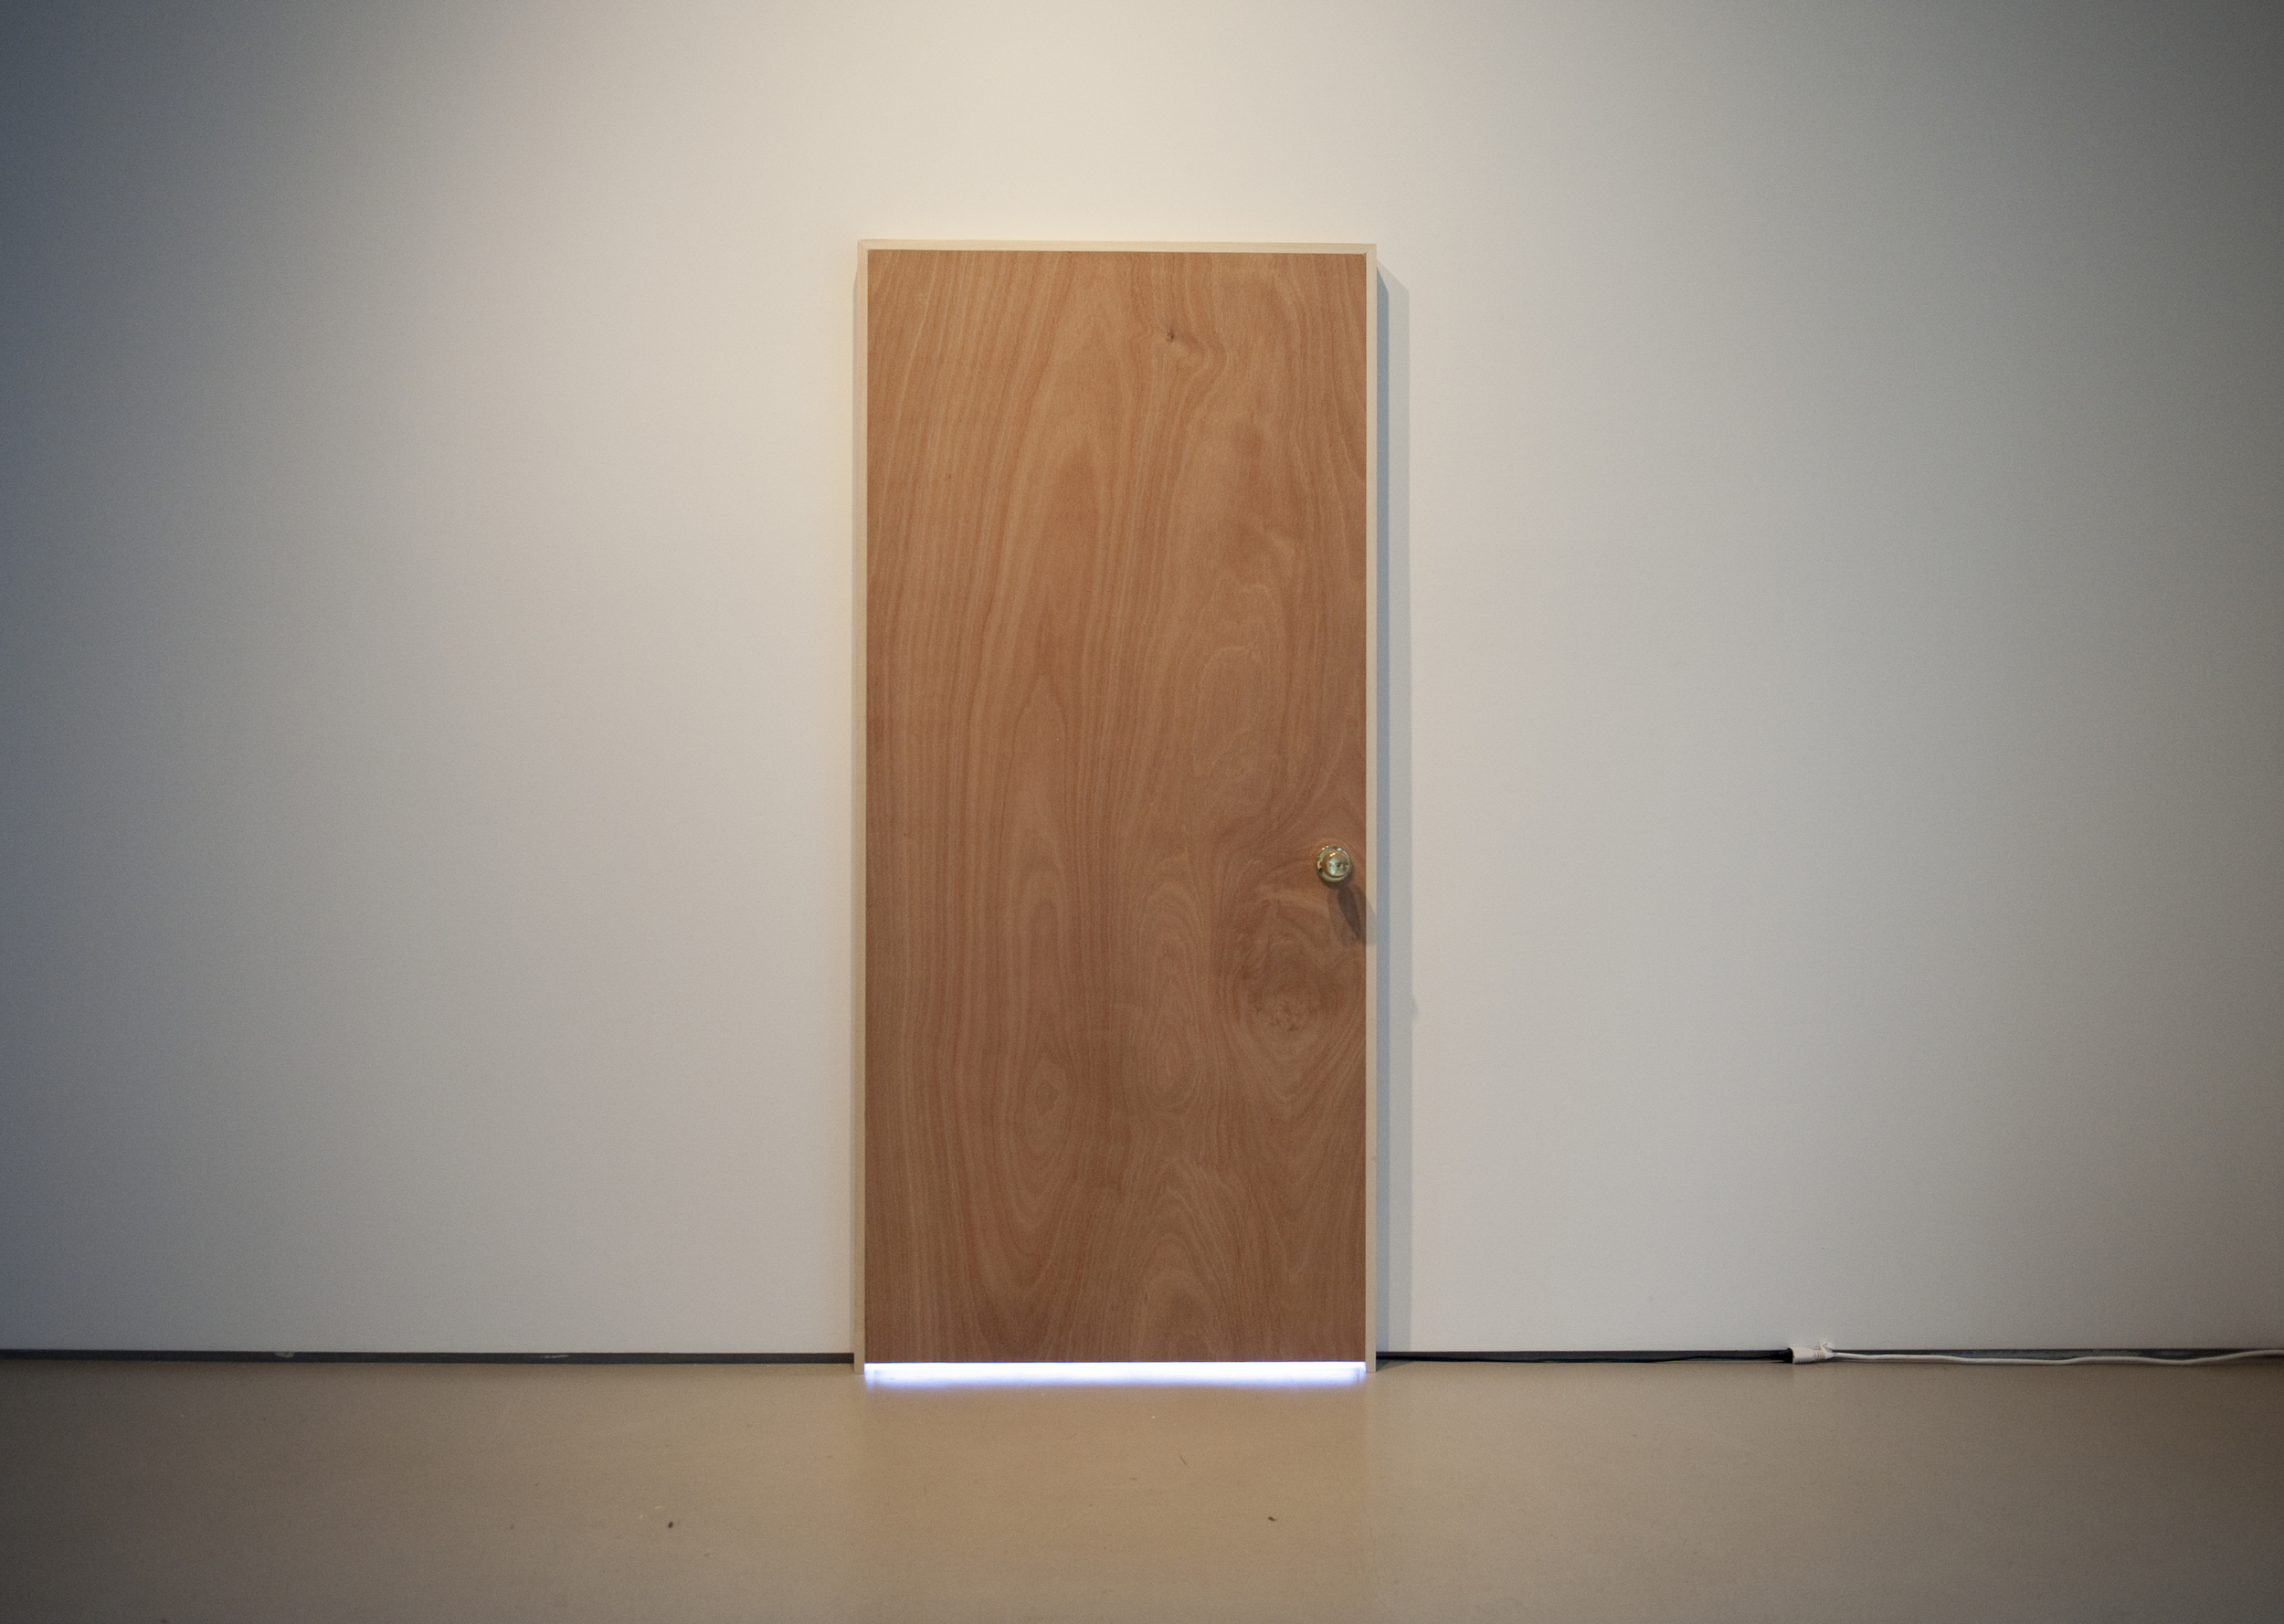 Nobody's Home,  2016 wood door, LED lights, microcontroller